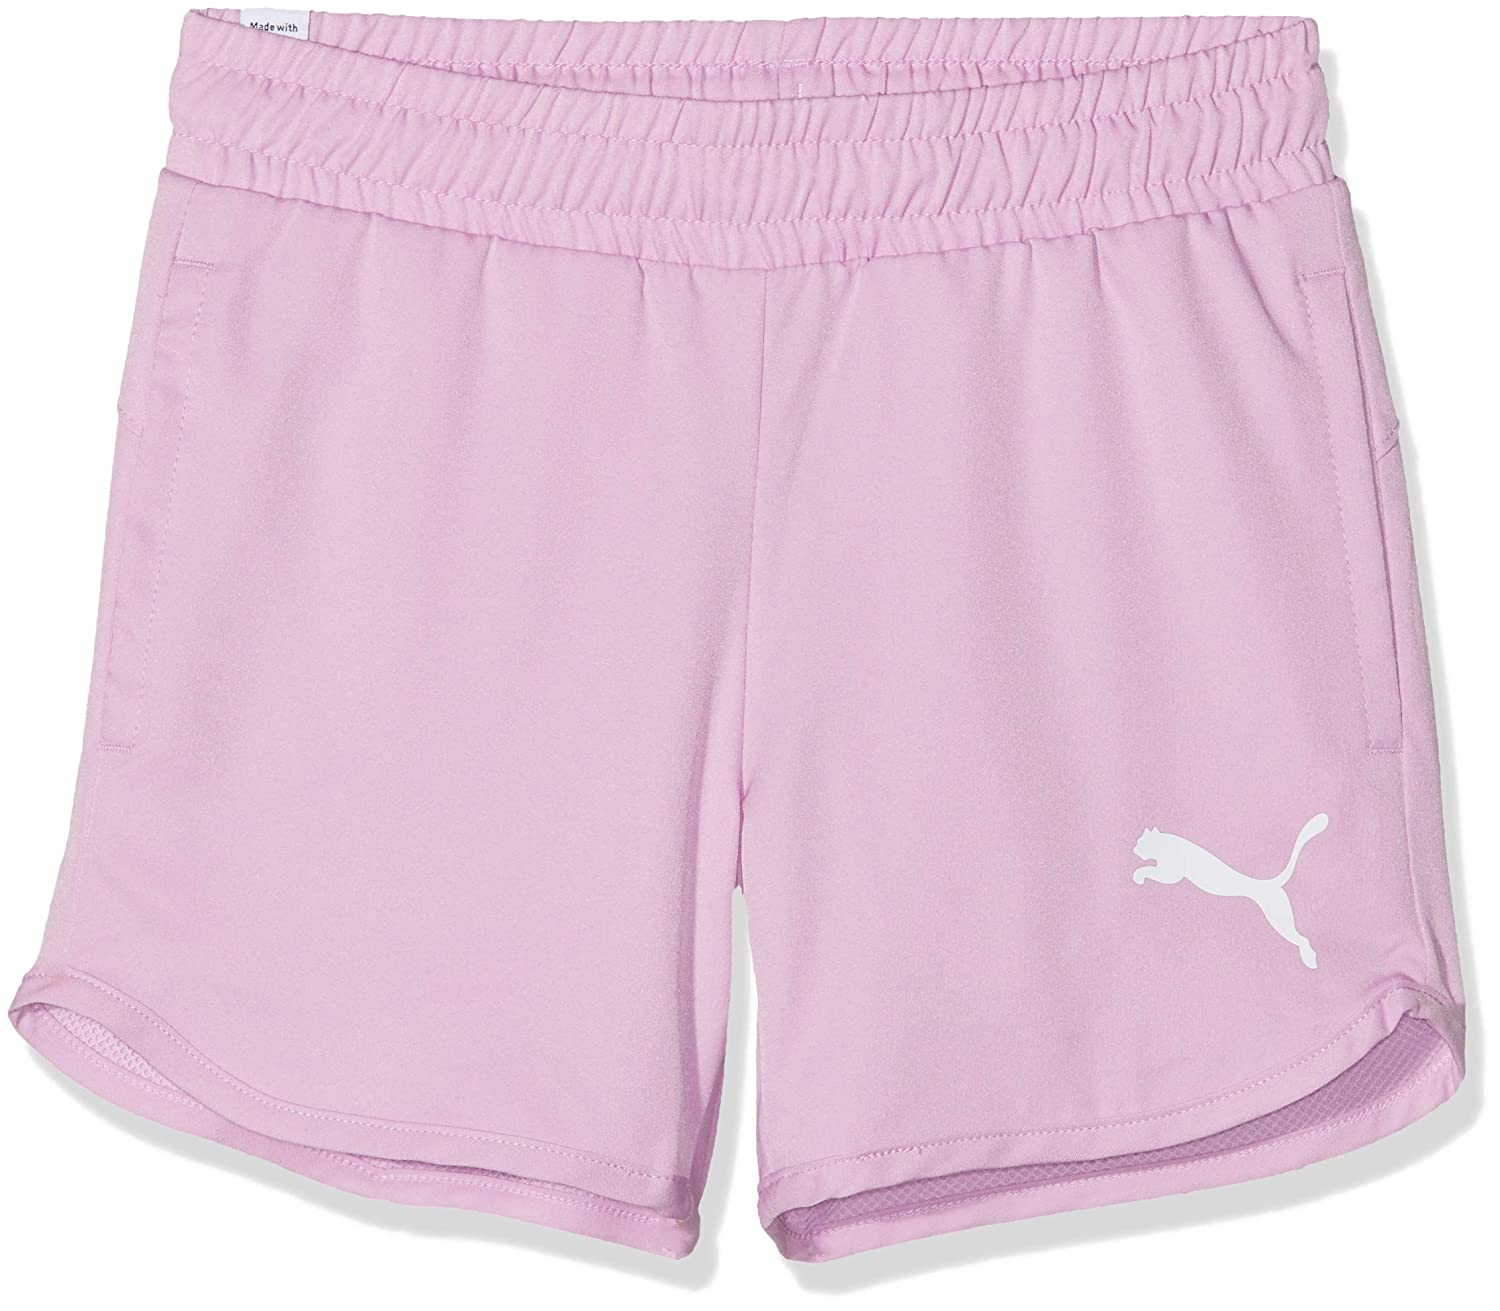 Puma Girls' Active Shorts G Trousers PUMGG|#Puma 851751